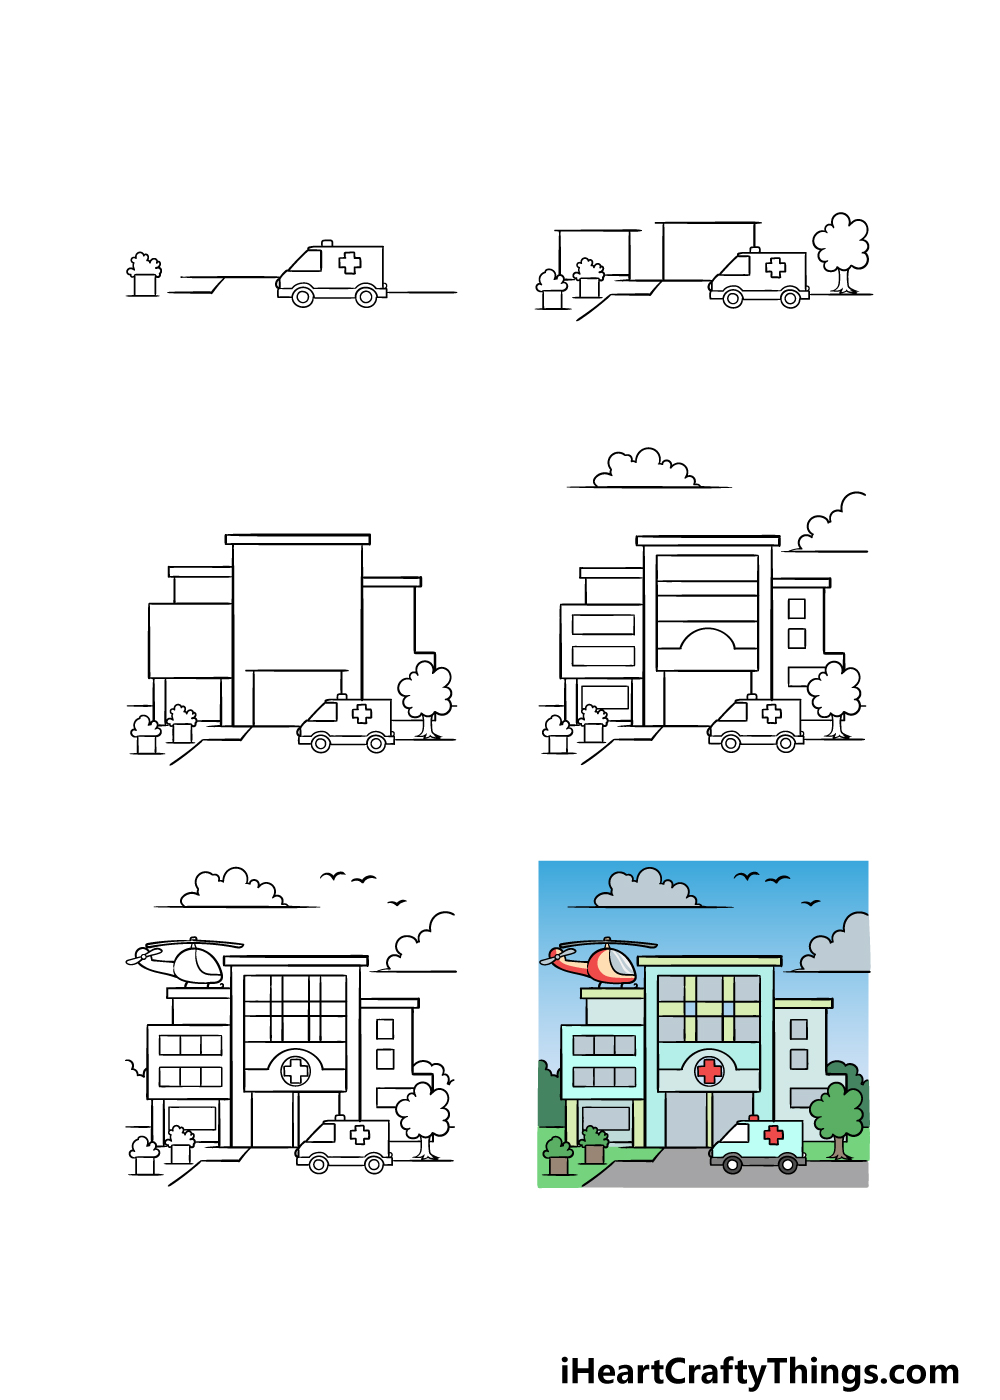 how to draw a hospital in 6 steps